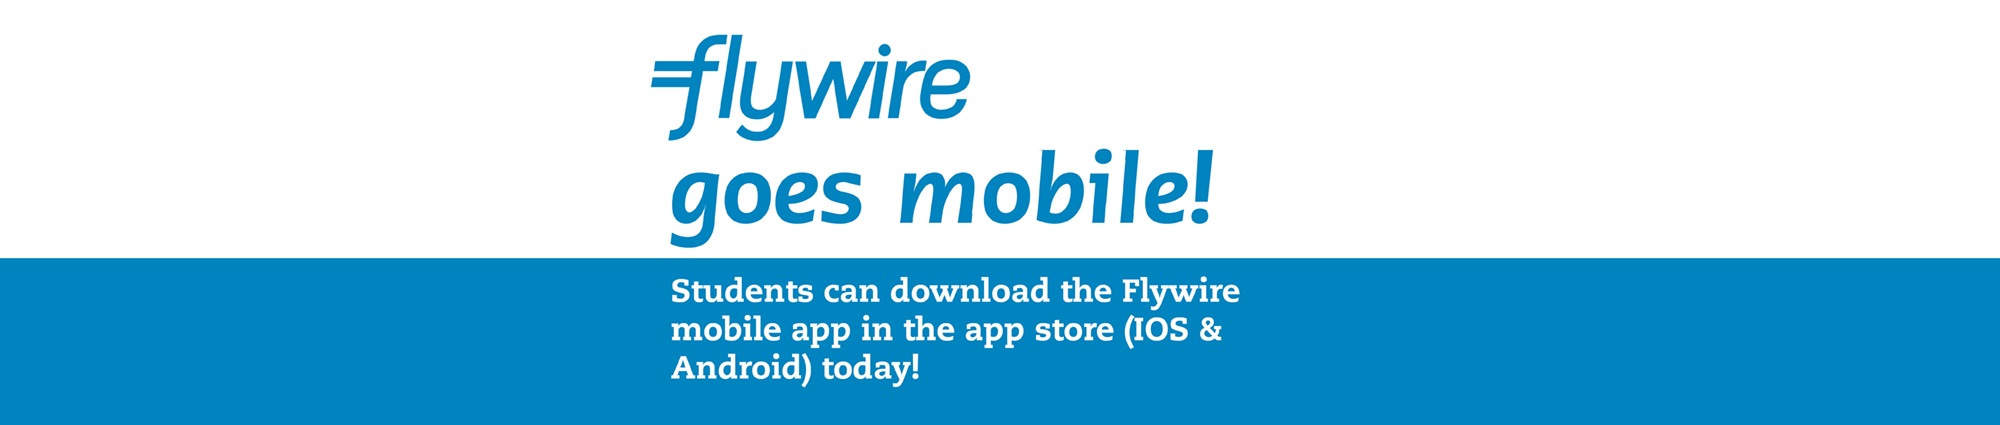 Flywire goes mobile! Student can download the Flywire mobile app in the app store (IOS & Android) today!